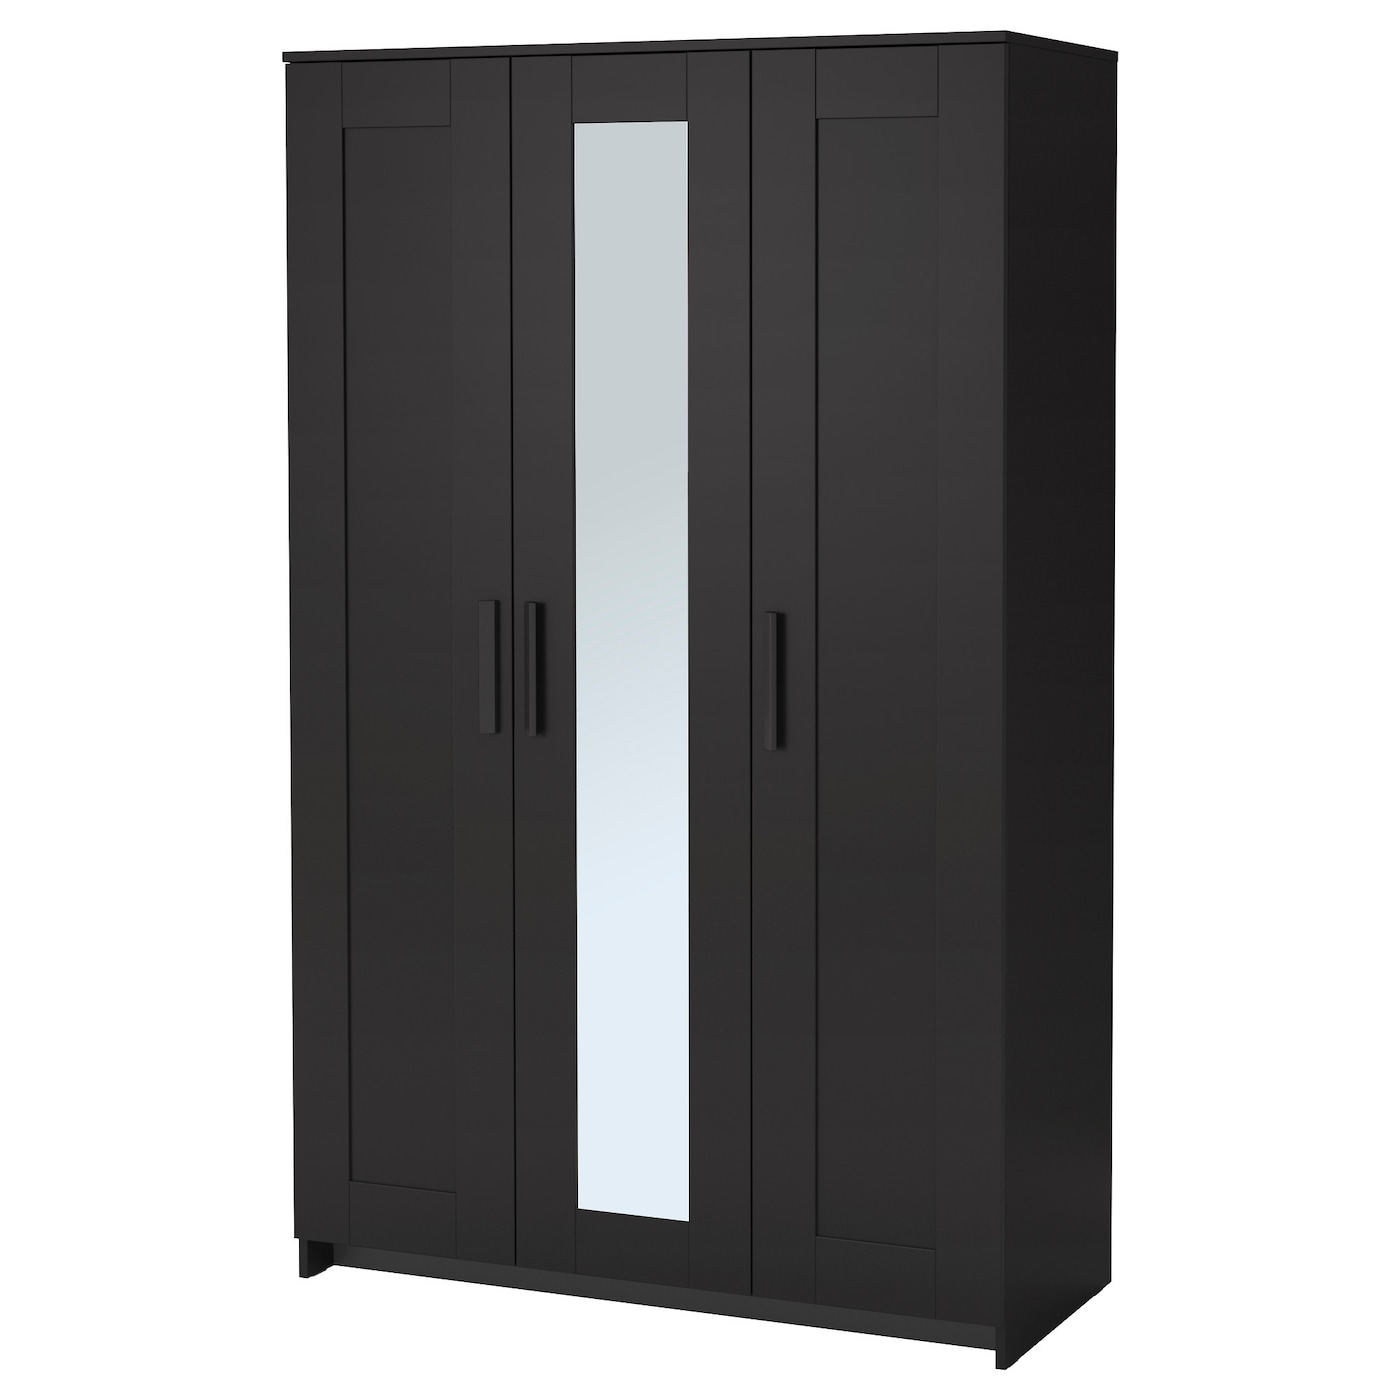 Brimnes wardrobe with 3 doors black 117x190 cm ikea for Porte miroir ikea